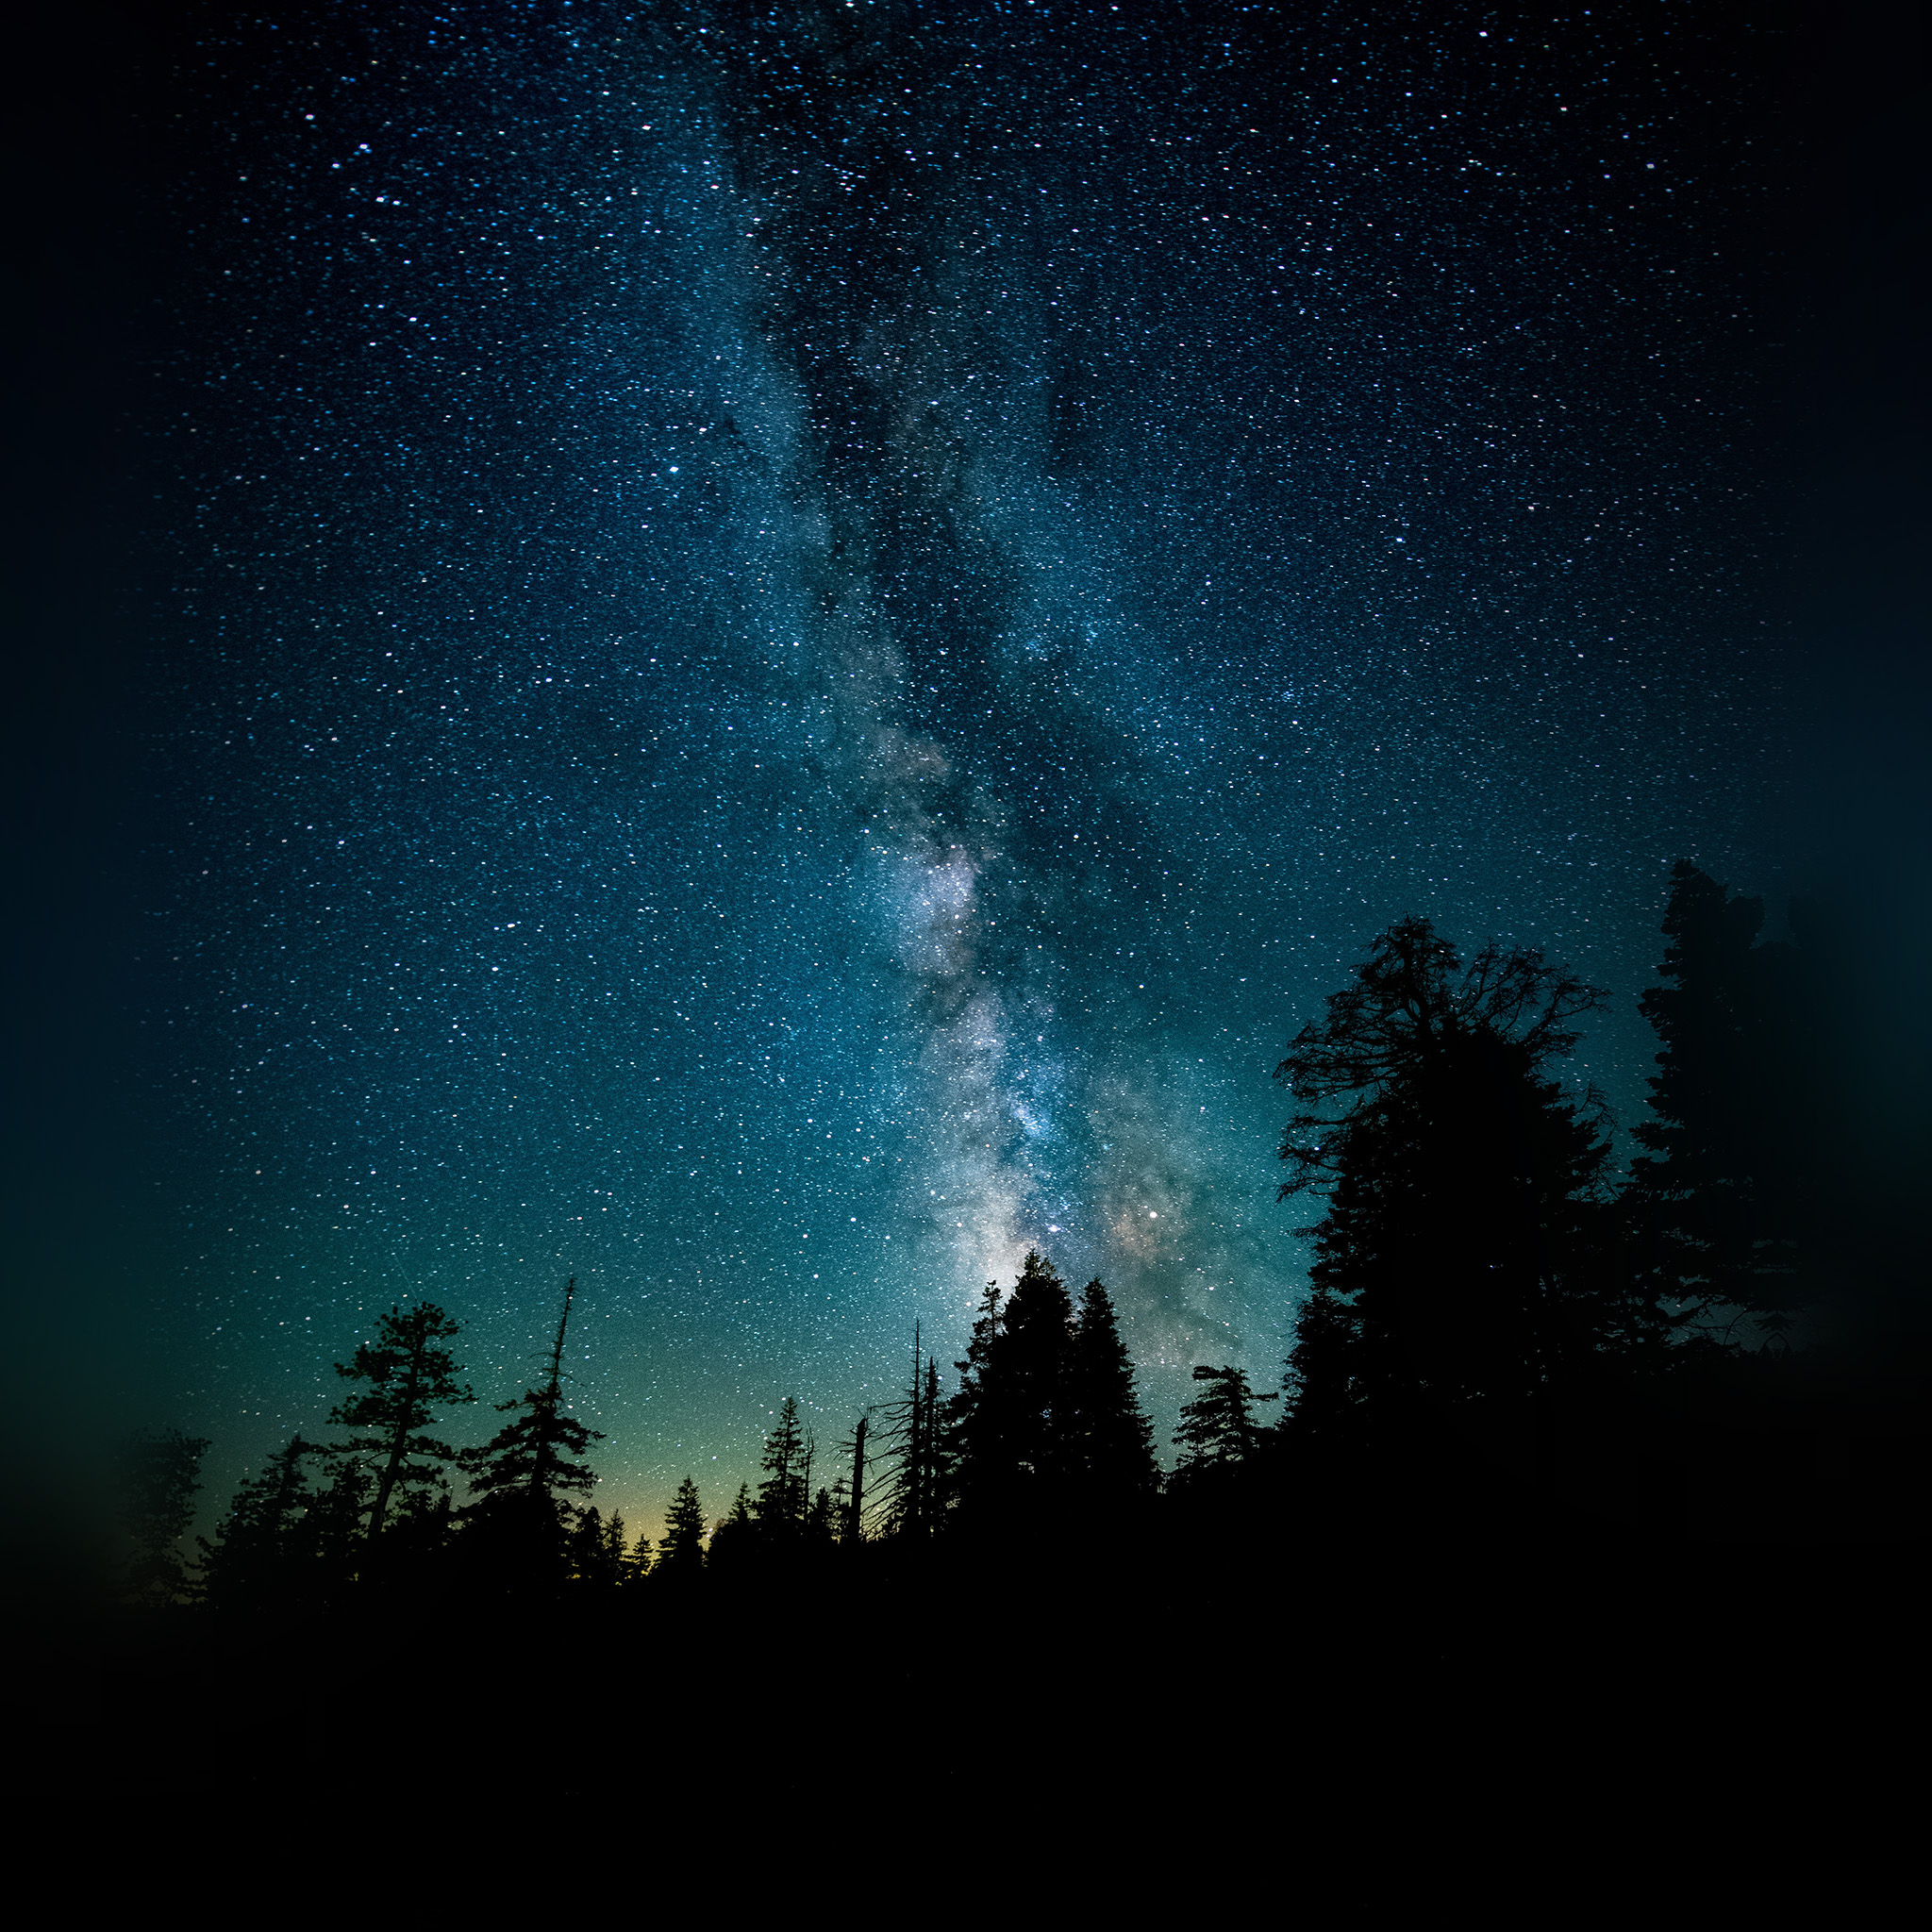 Wallpapers - Space night sky wallpaper ...